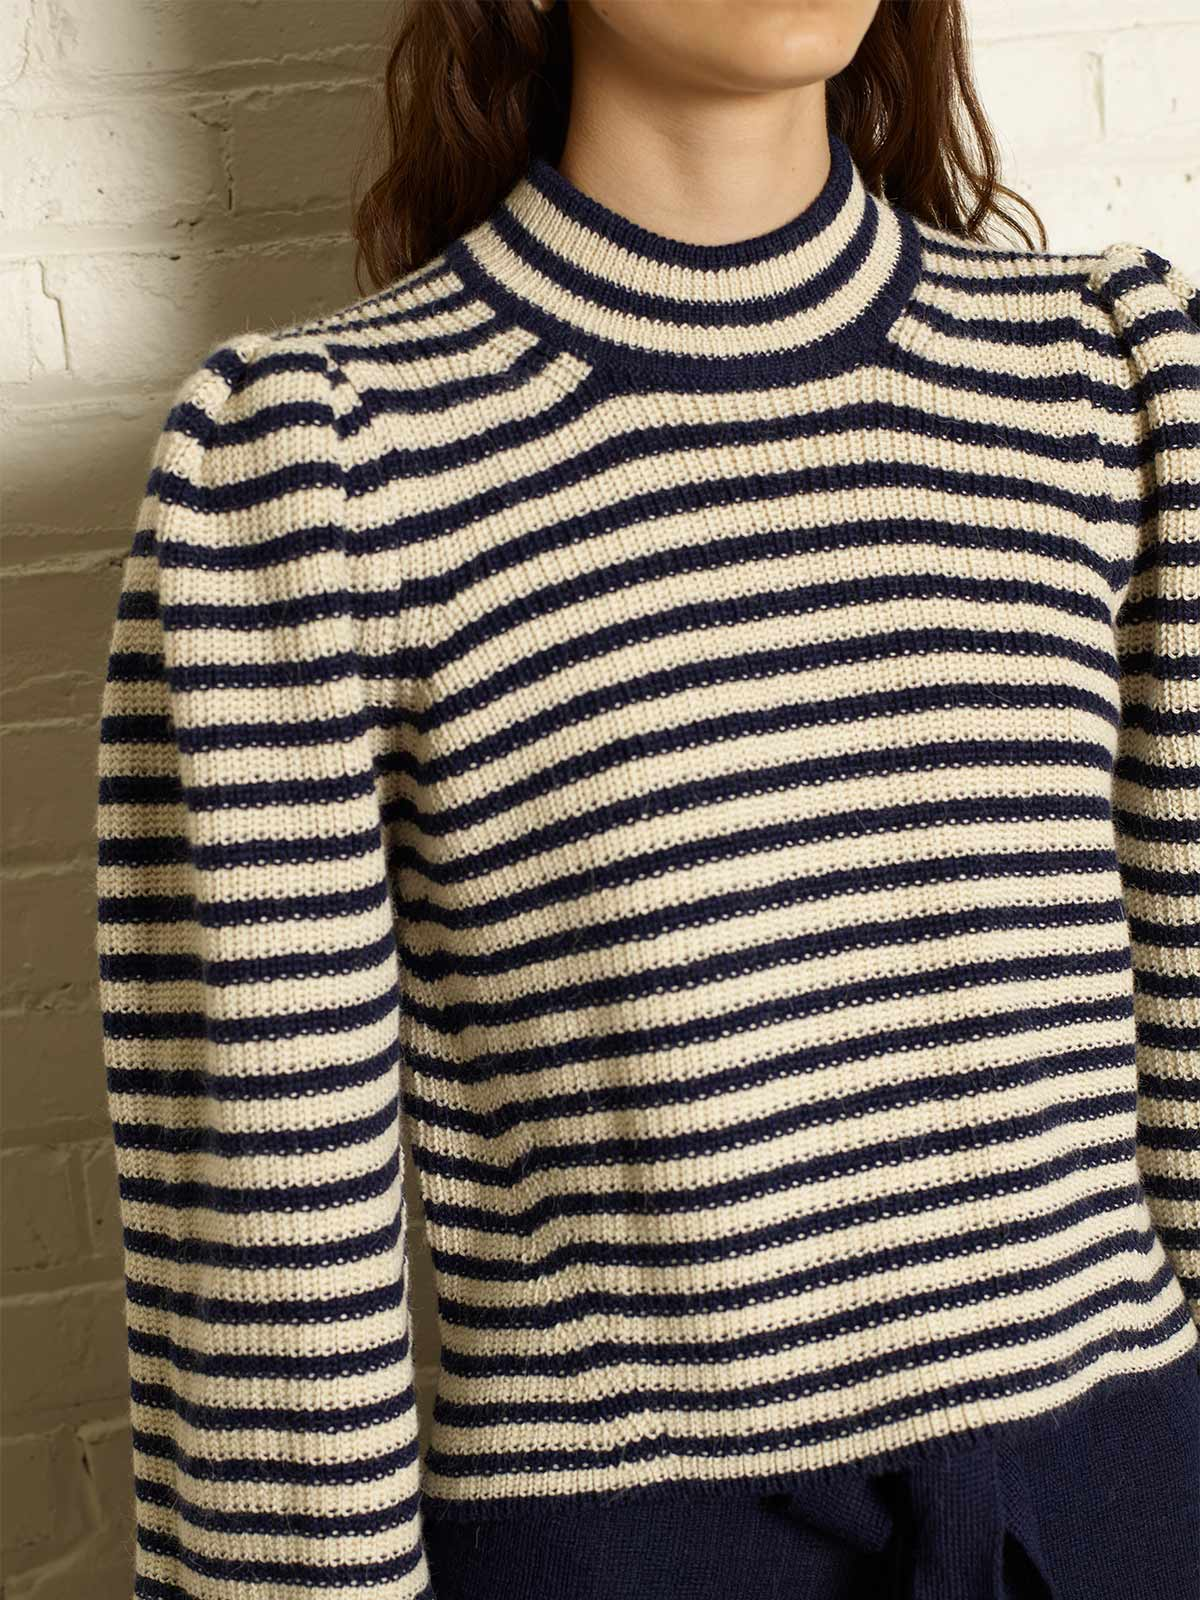 Mia Sweater | Ivory/Navy Stripe Mia Sweater | Ivory/Navy Stripe